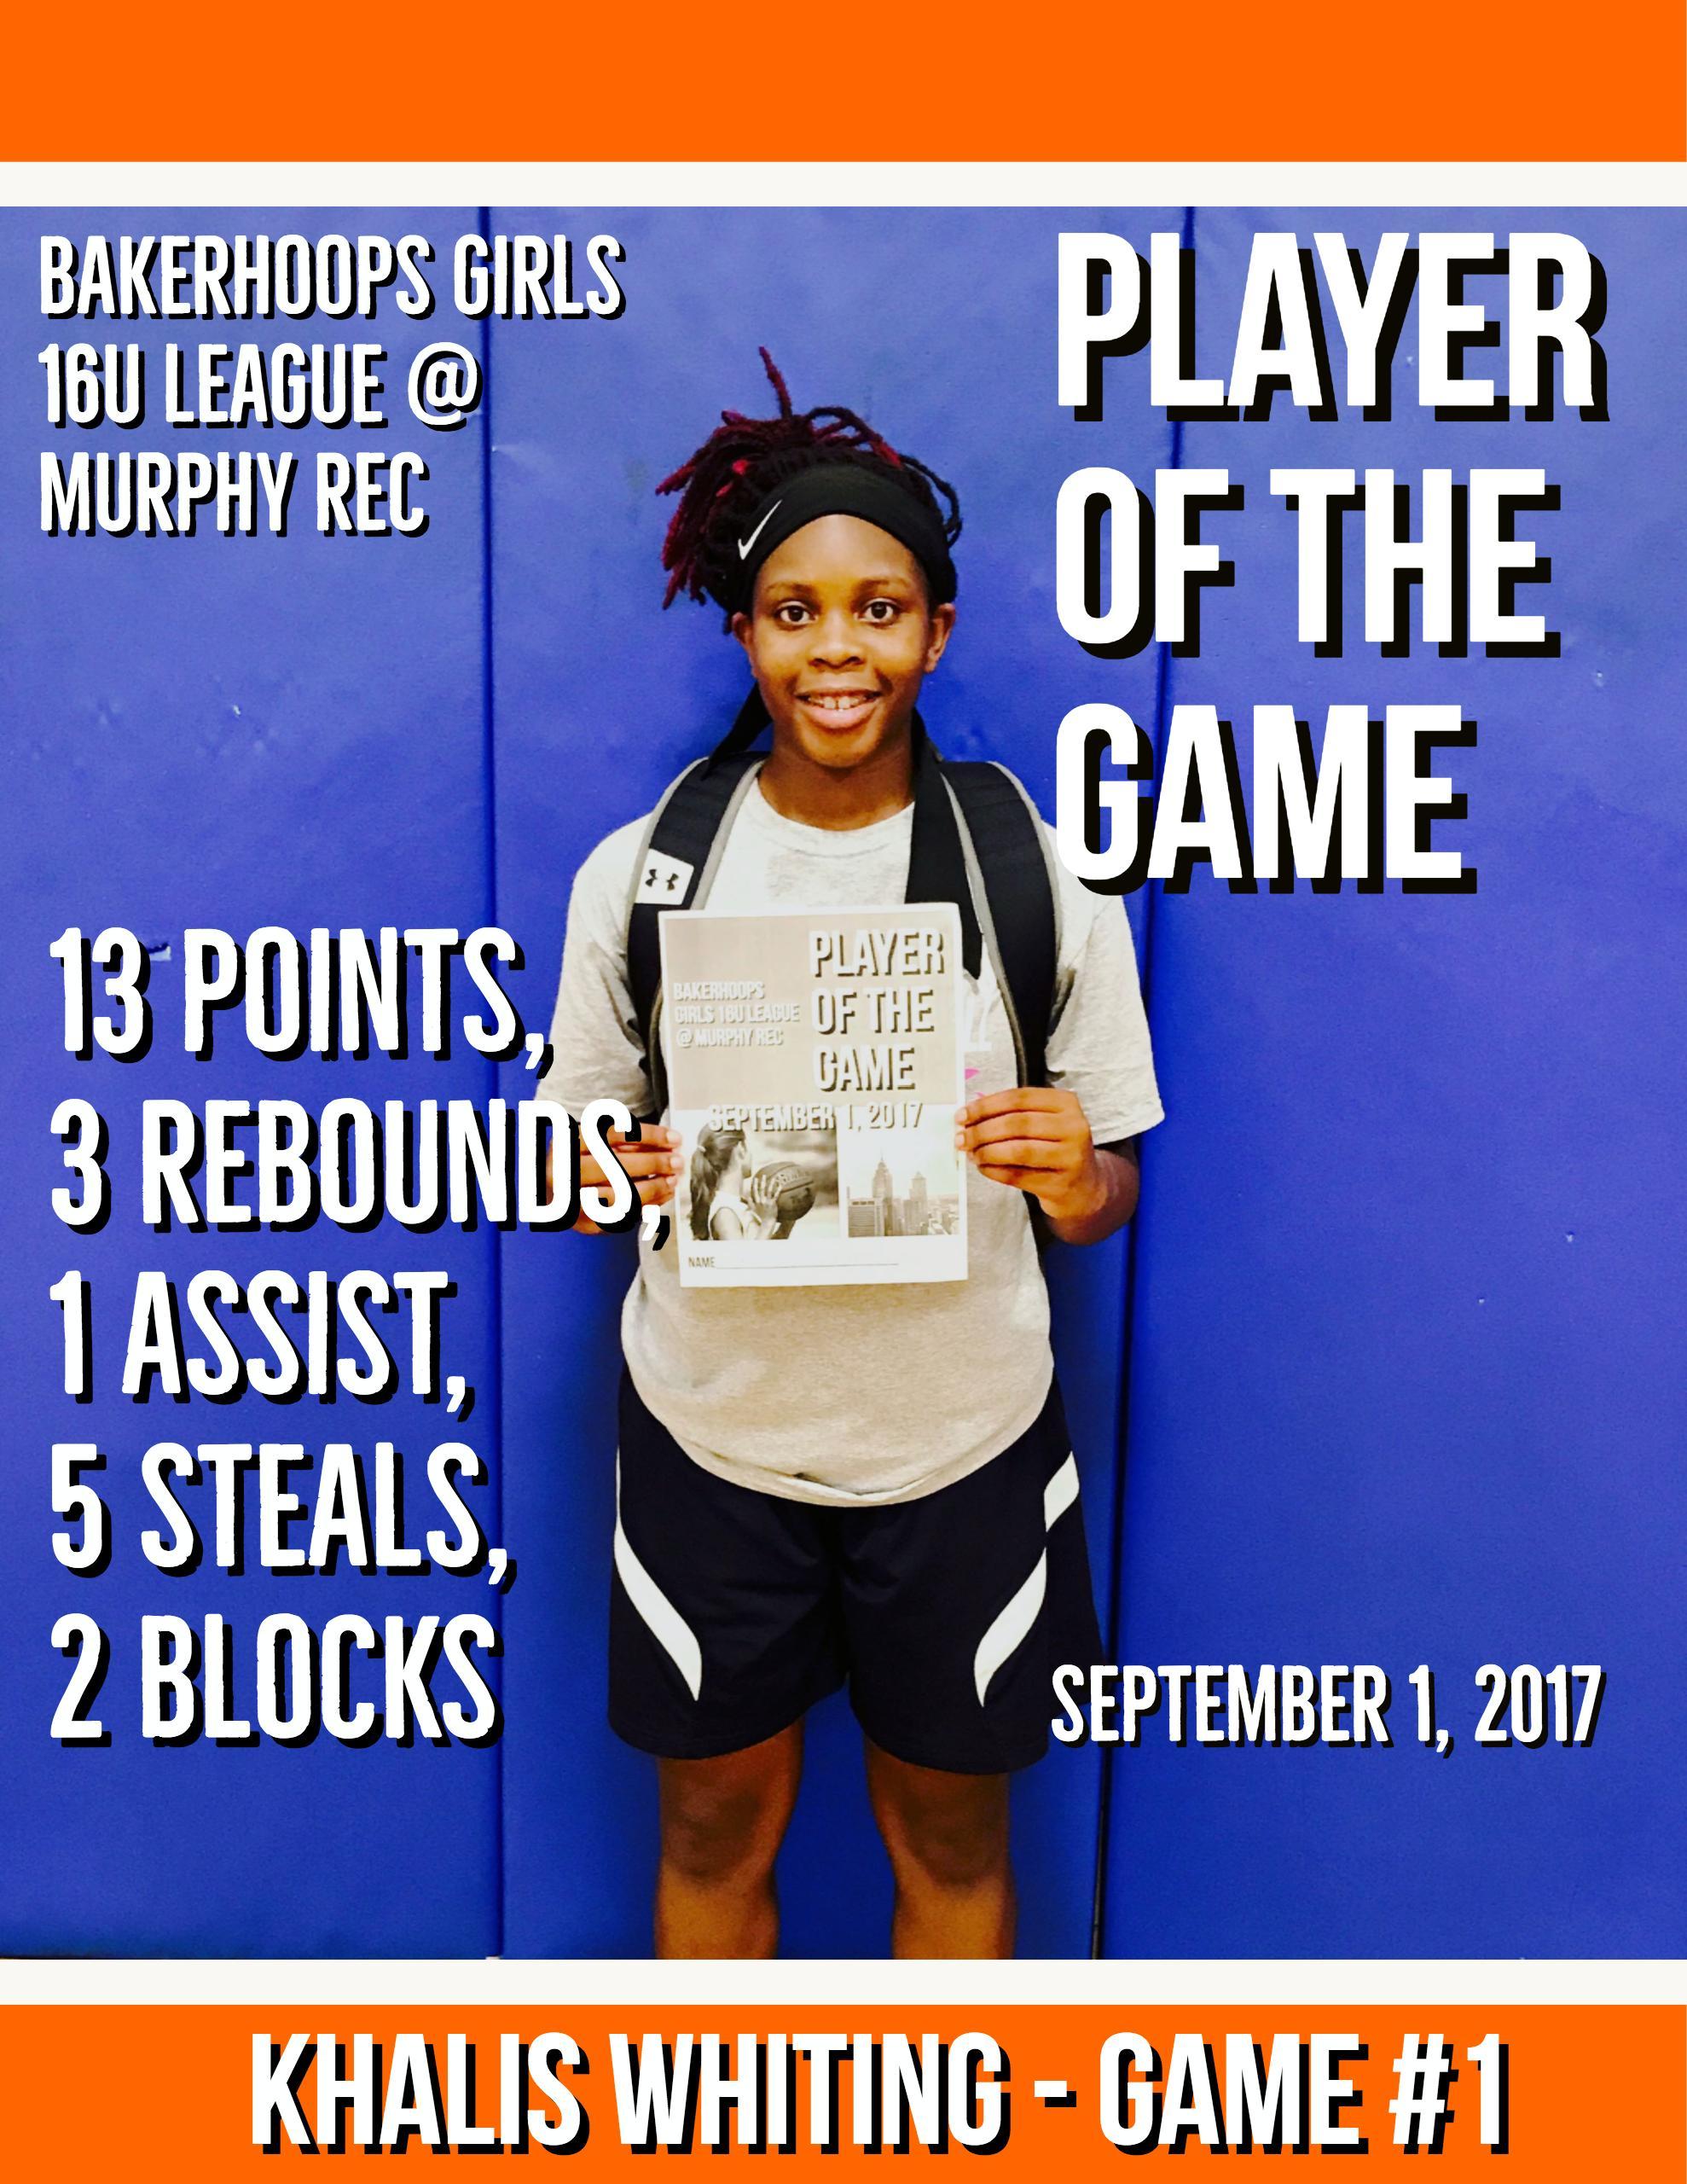 Khalis Whiting - September 1, 2017 Player of the Game - Game #1